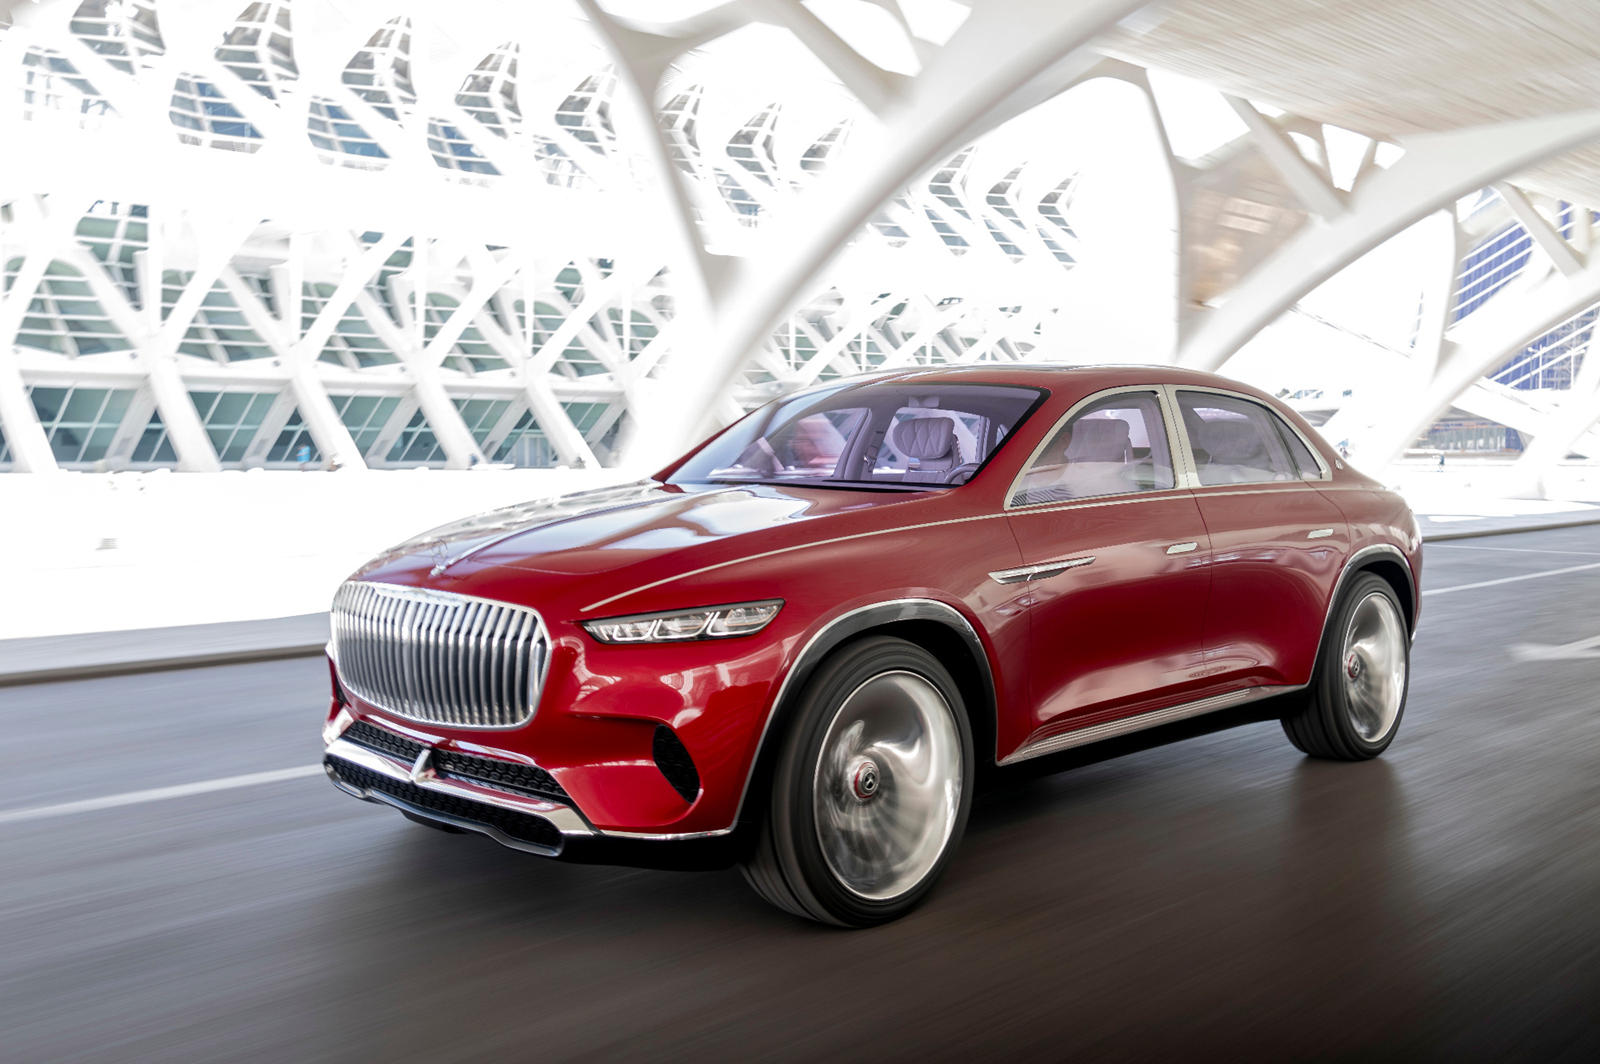 2021 Mercedes Maybach Suv Review Trims Specs Price New Interior Features Exterior Design And Specifications Carbuzz